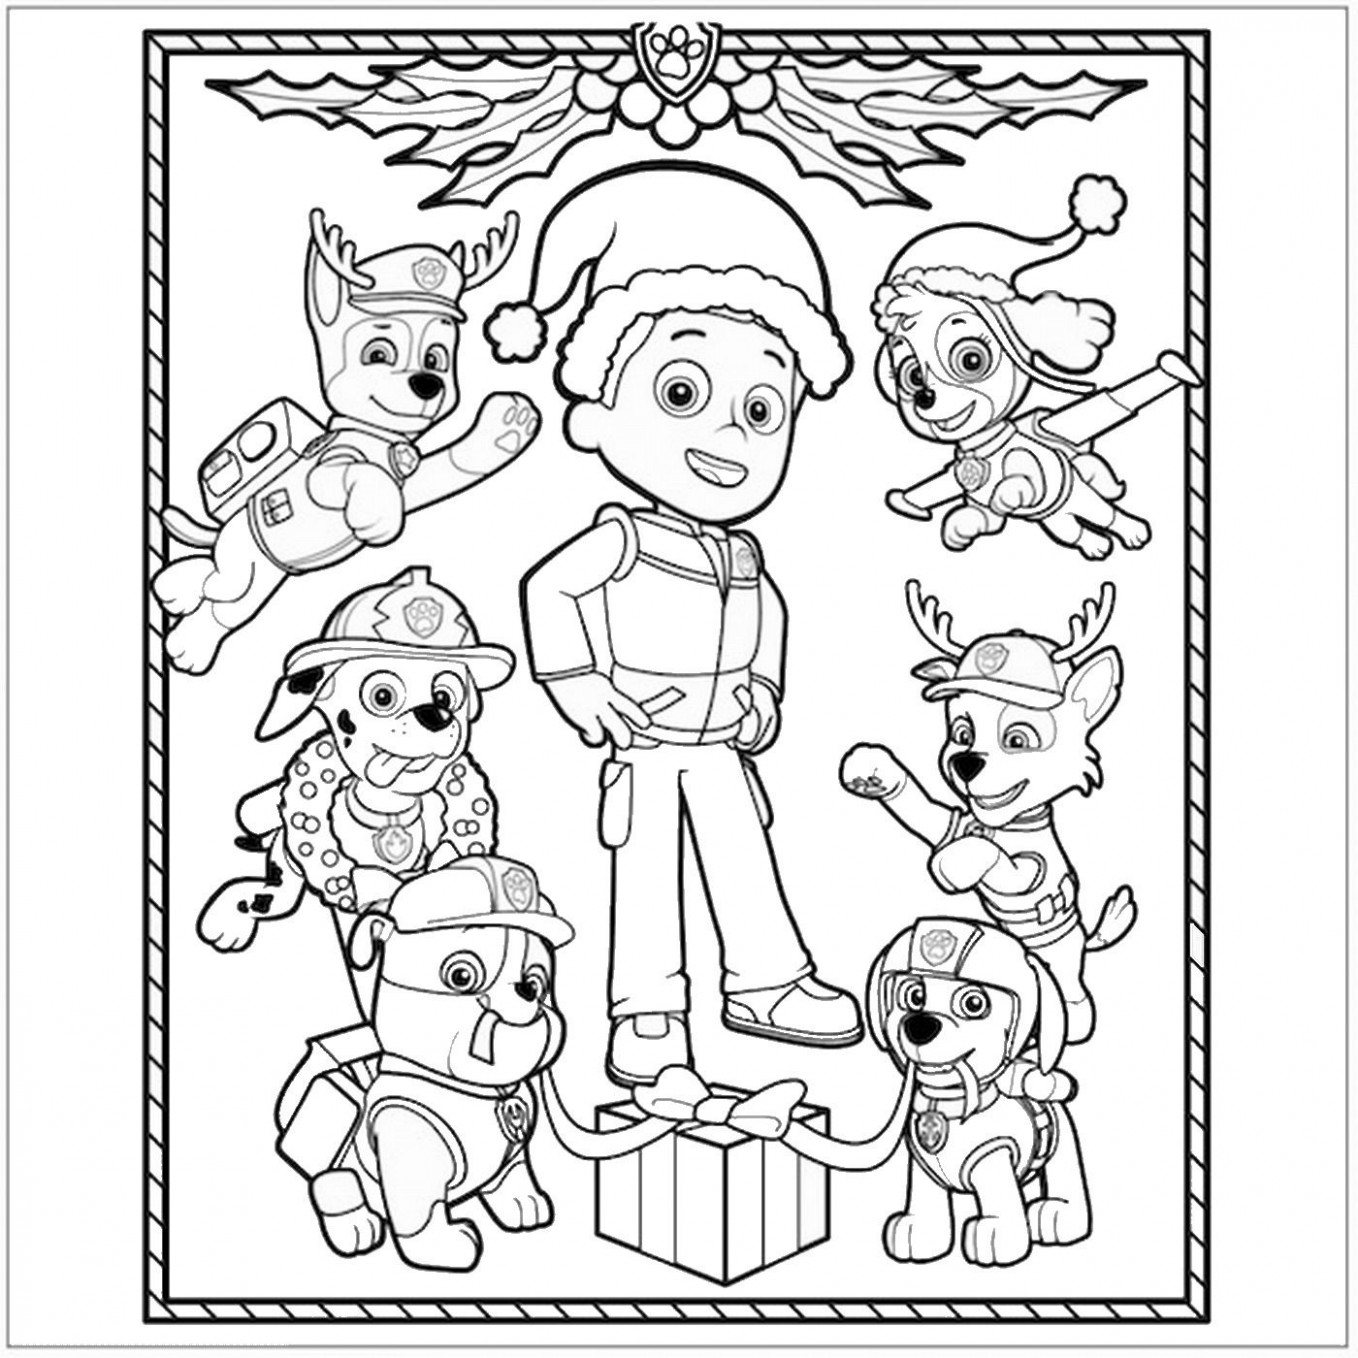 Paw Patrol Christmas Coloring Page … | Coloring Pages | Paw p…